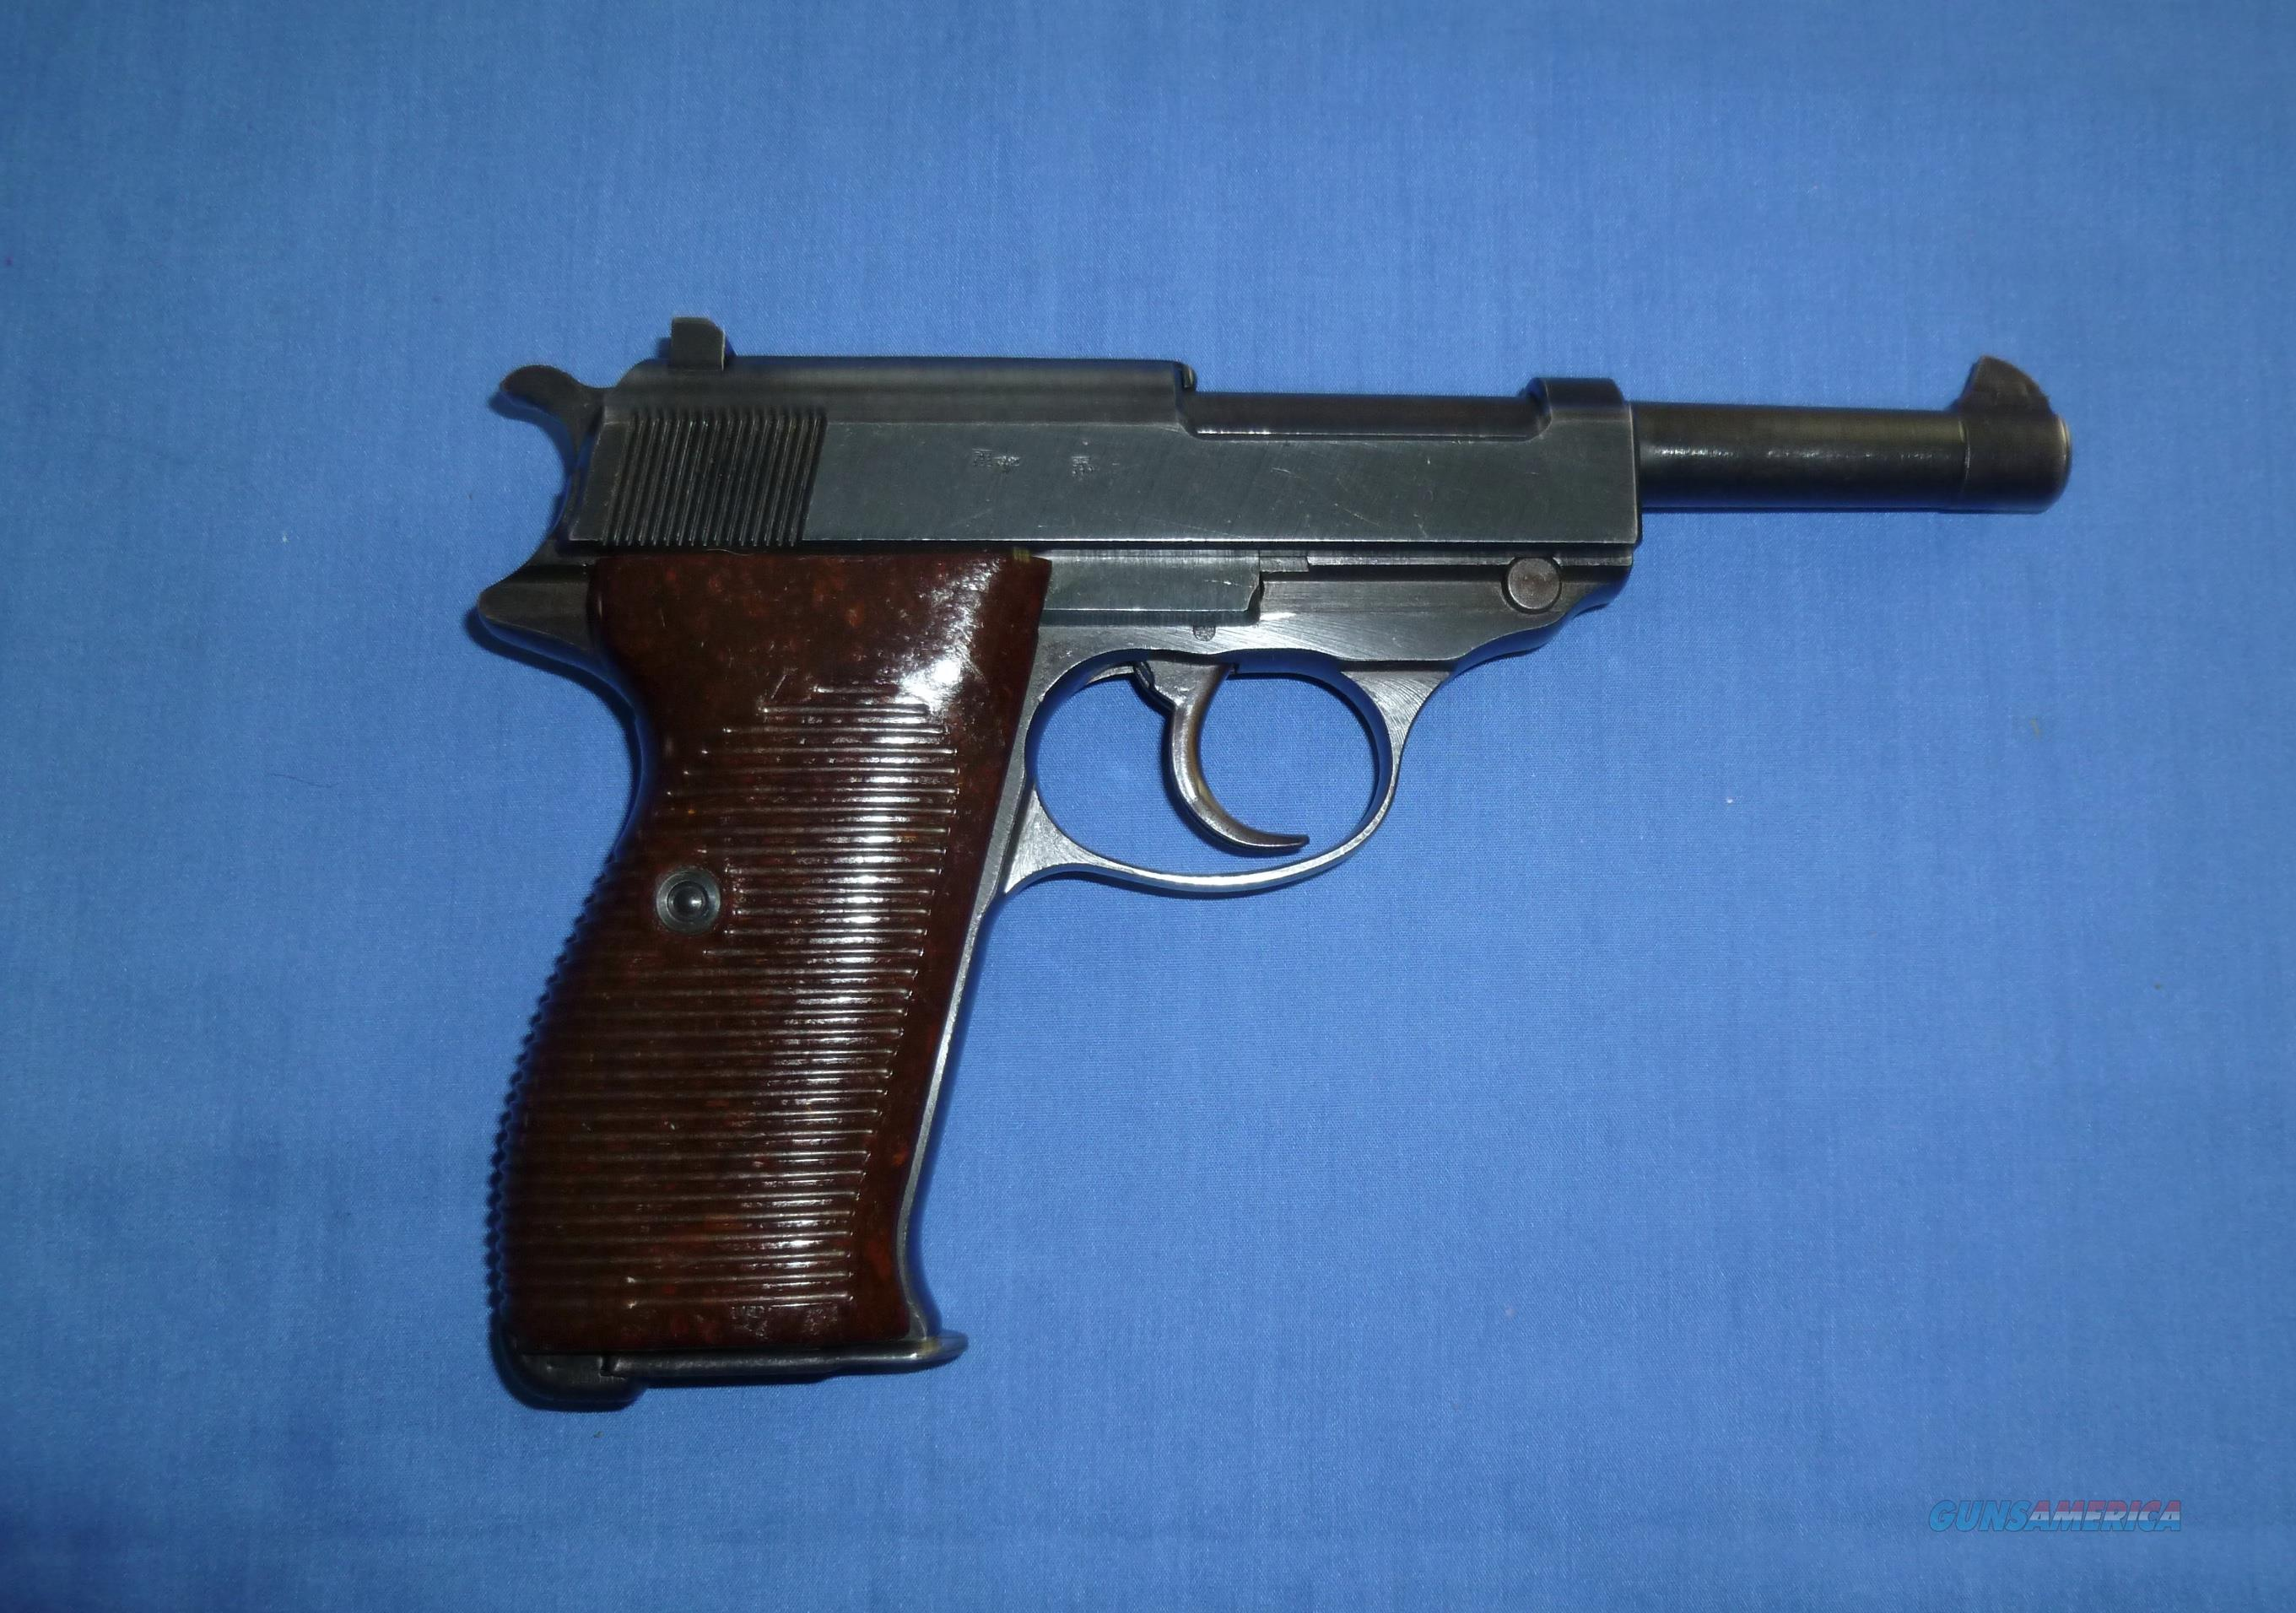 WORLD WAR II WALTHER P.38 9MM PISTOL  Guns > Pistols > Walther Pistols > Pre-1945 > P-38